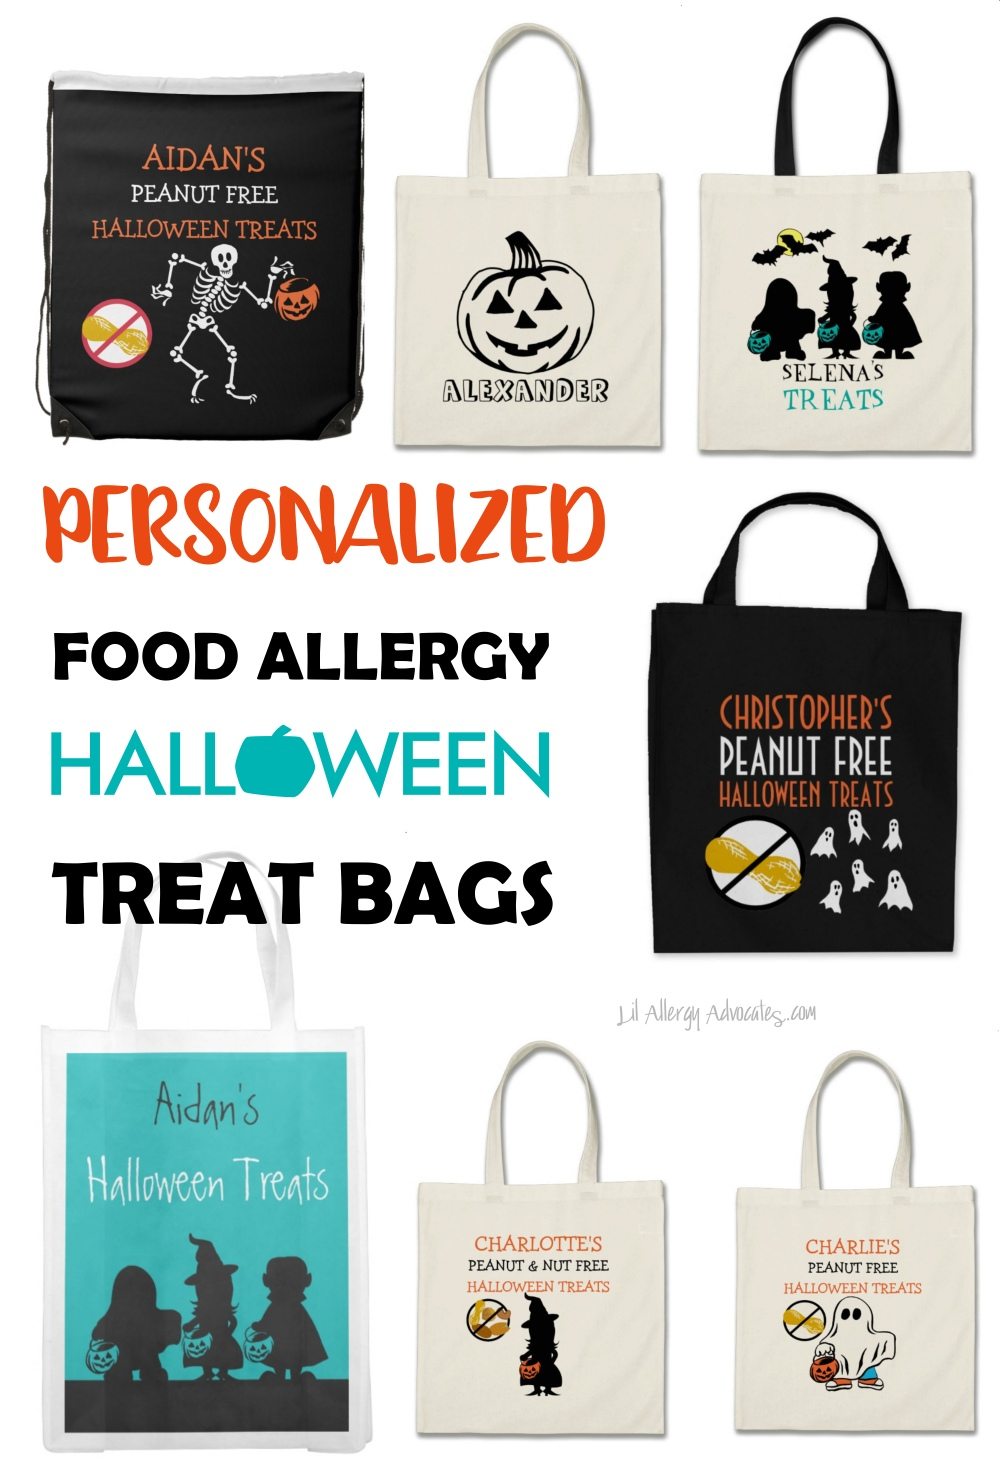 Personalized Food Allergy Treat Bags